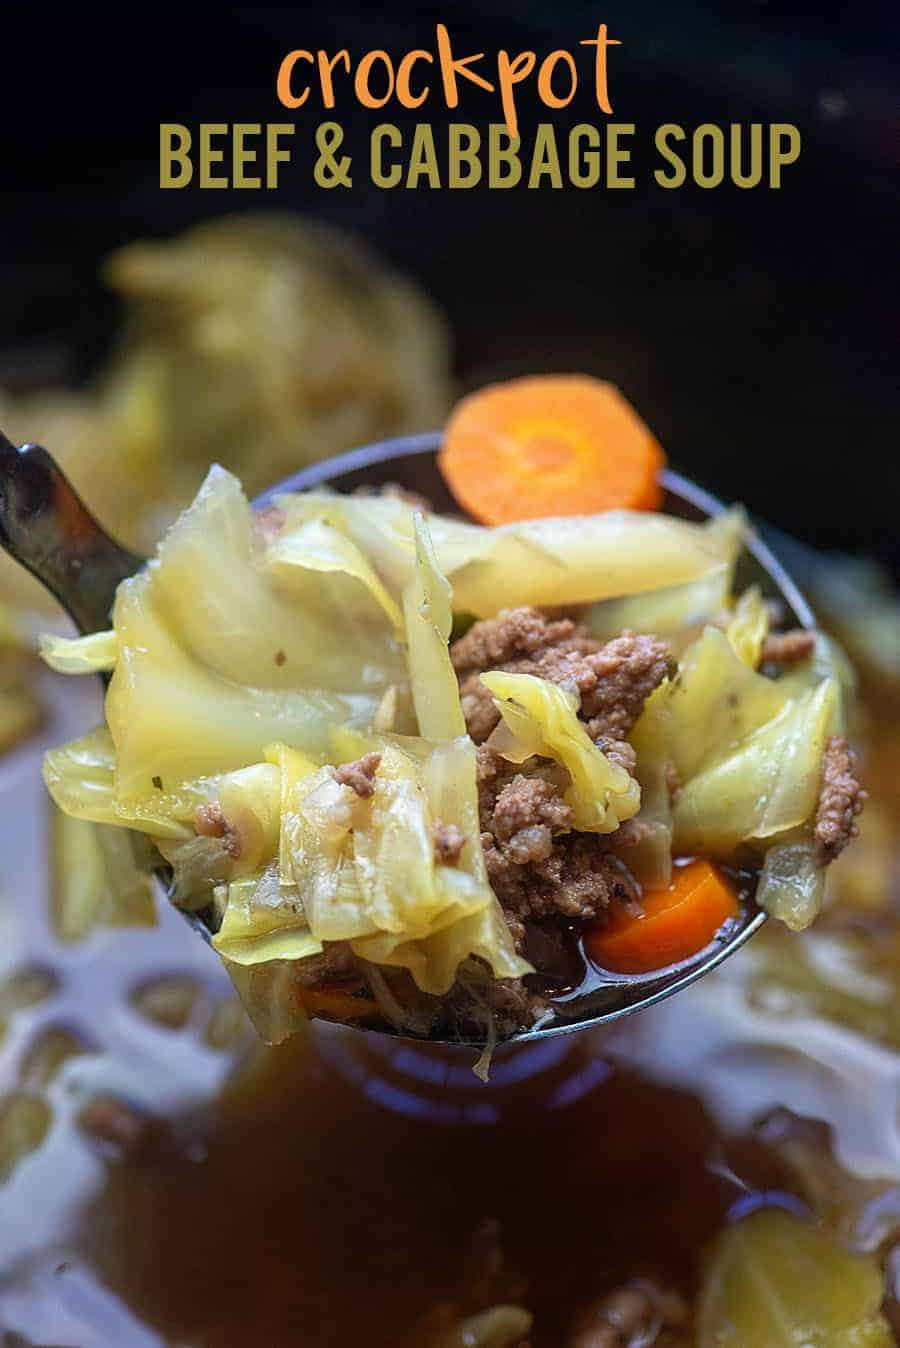 Crockpot Cabbage Soup with beef! It's low carb with just 3 net carbs per serving! #lowcarb #cabbage #soup #crockpot